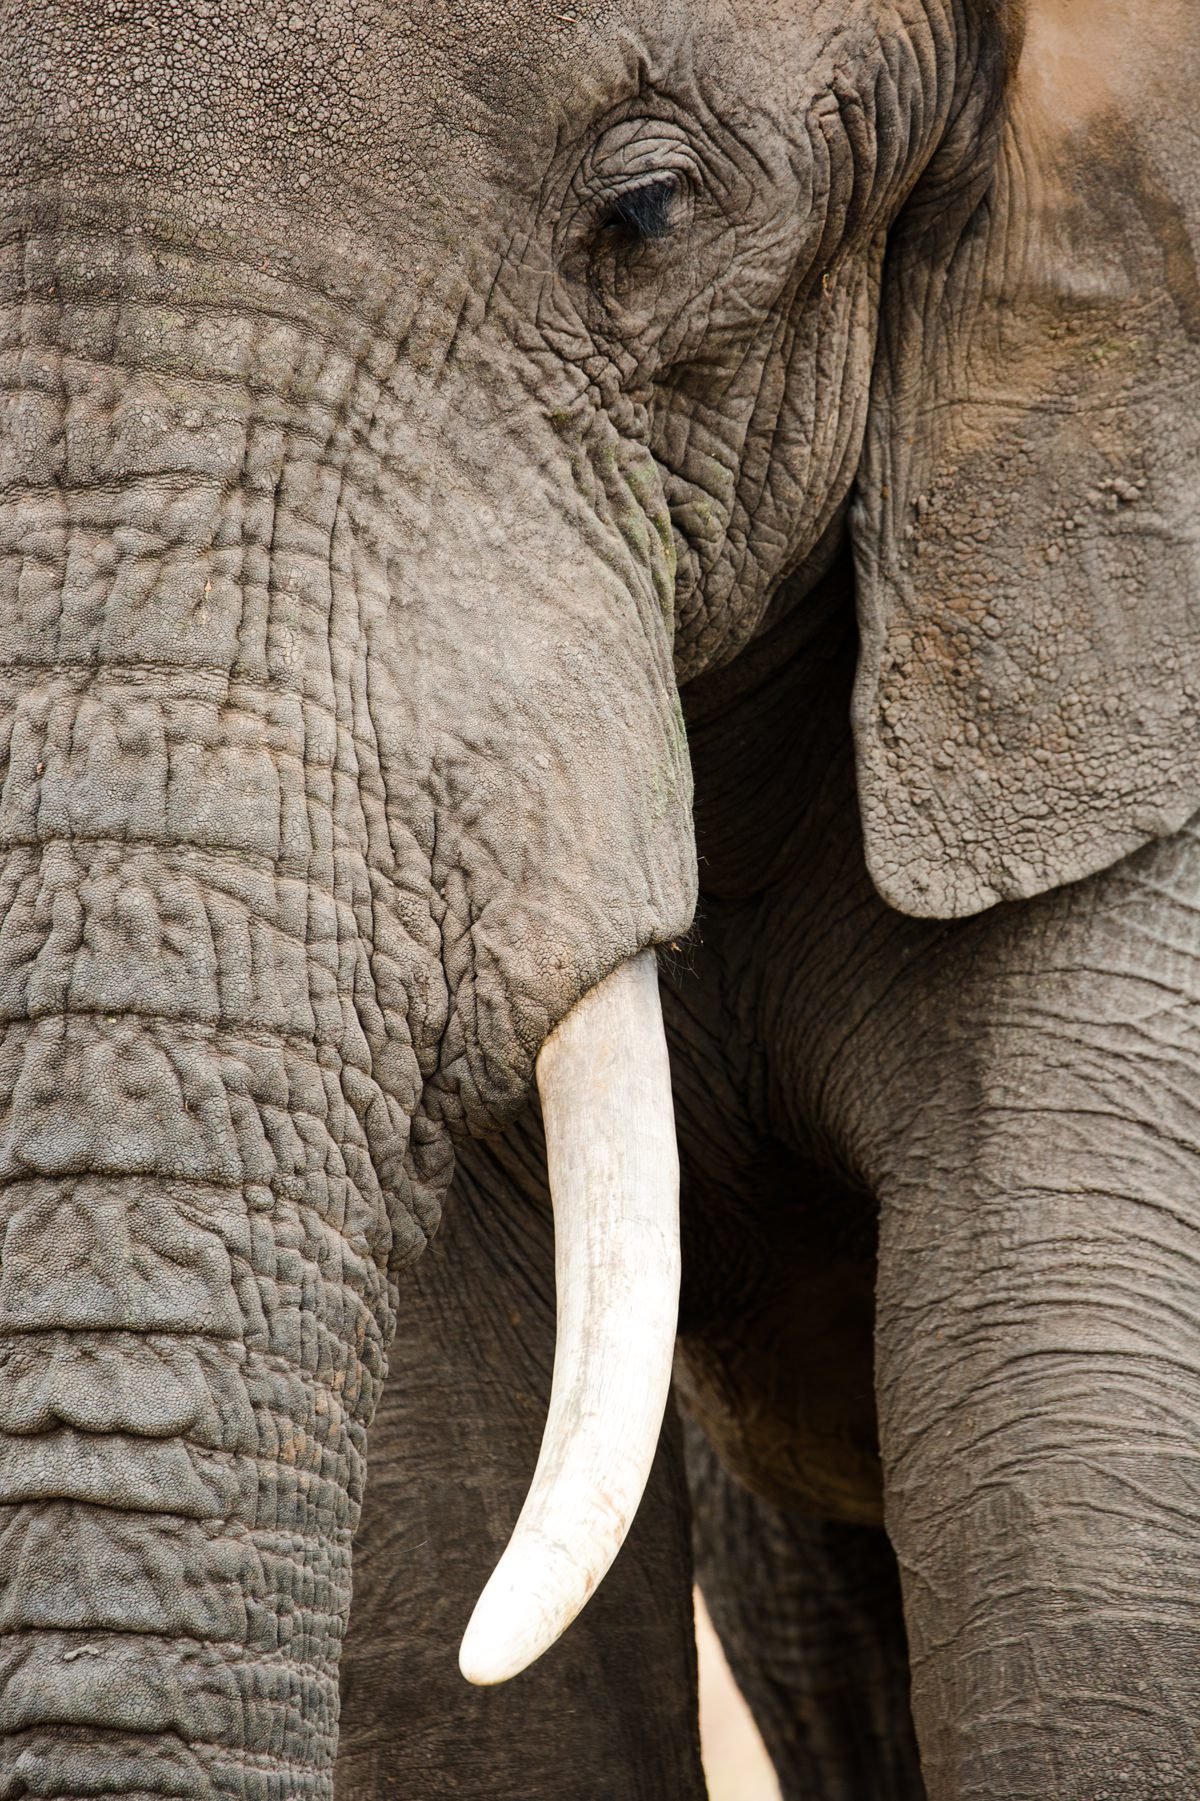 elephant-tusk-tanzania-photographer